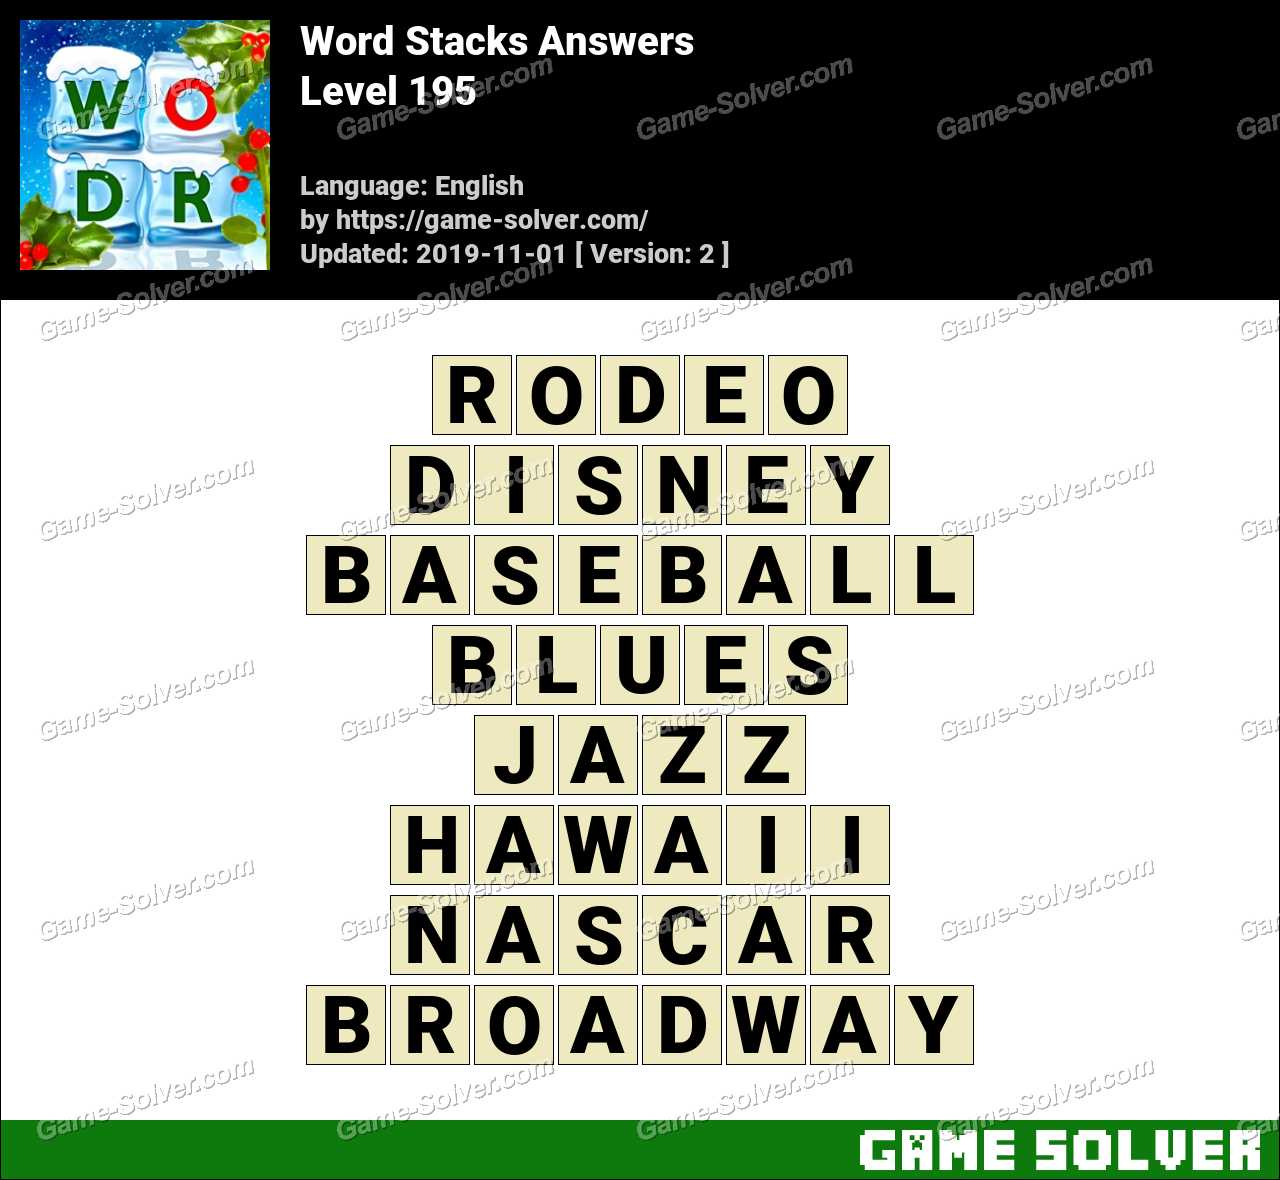 Word Stacks Level 195 Answers